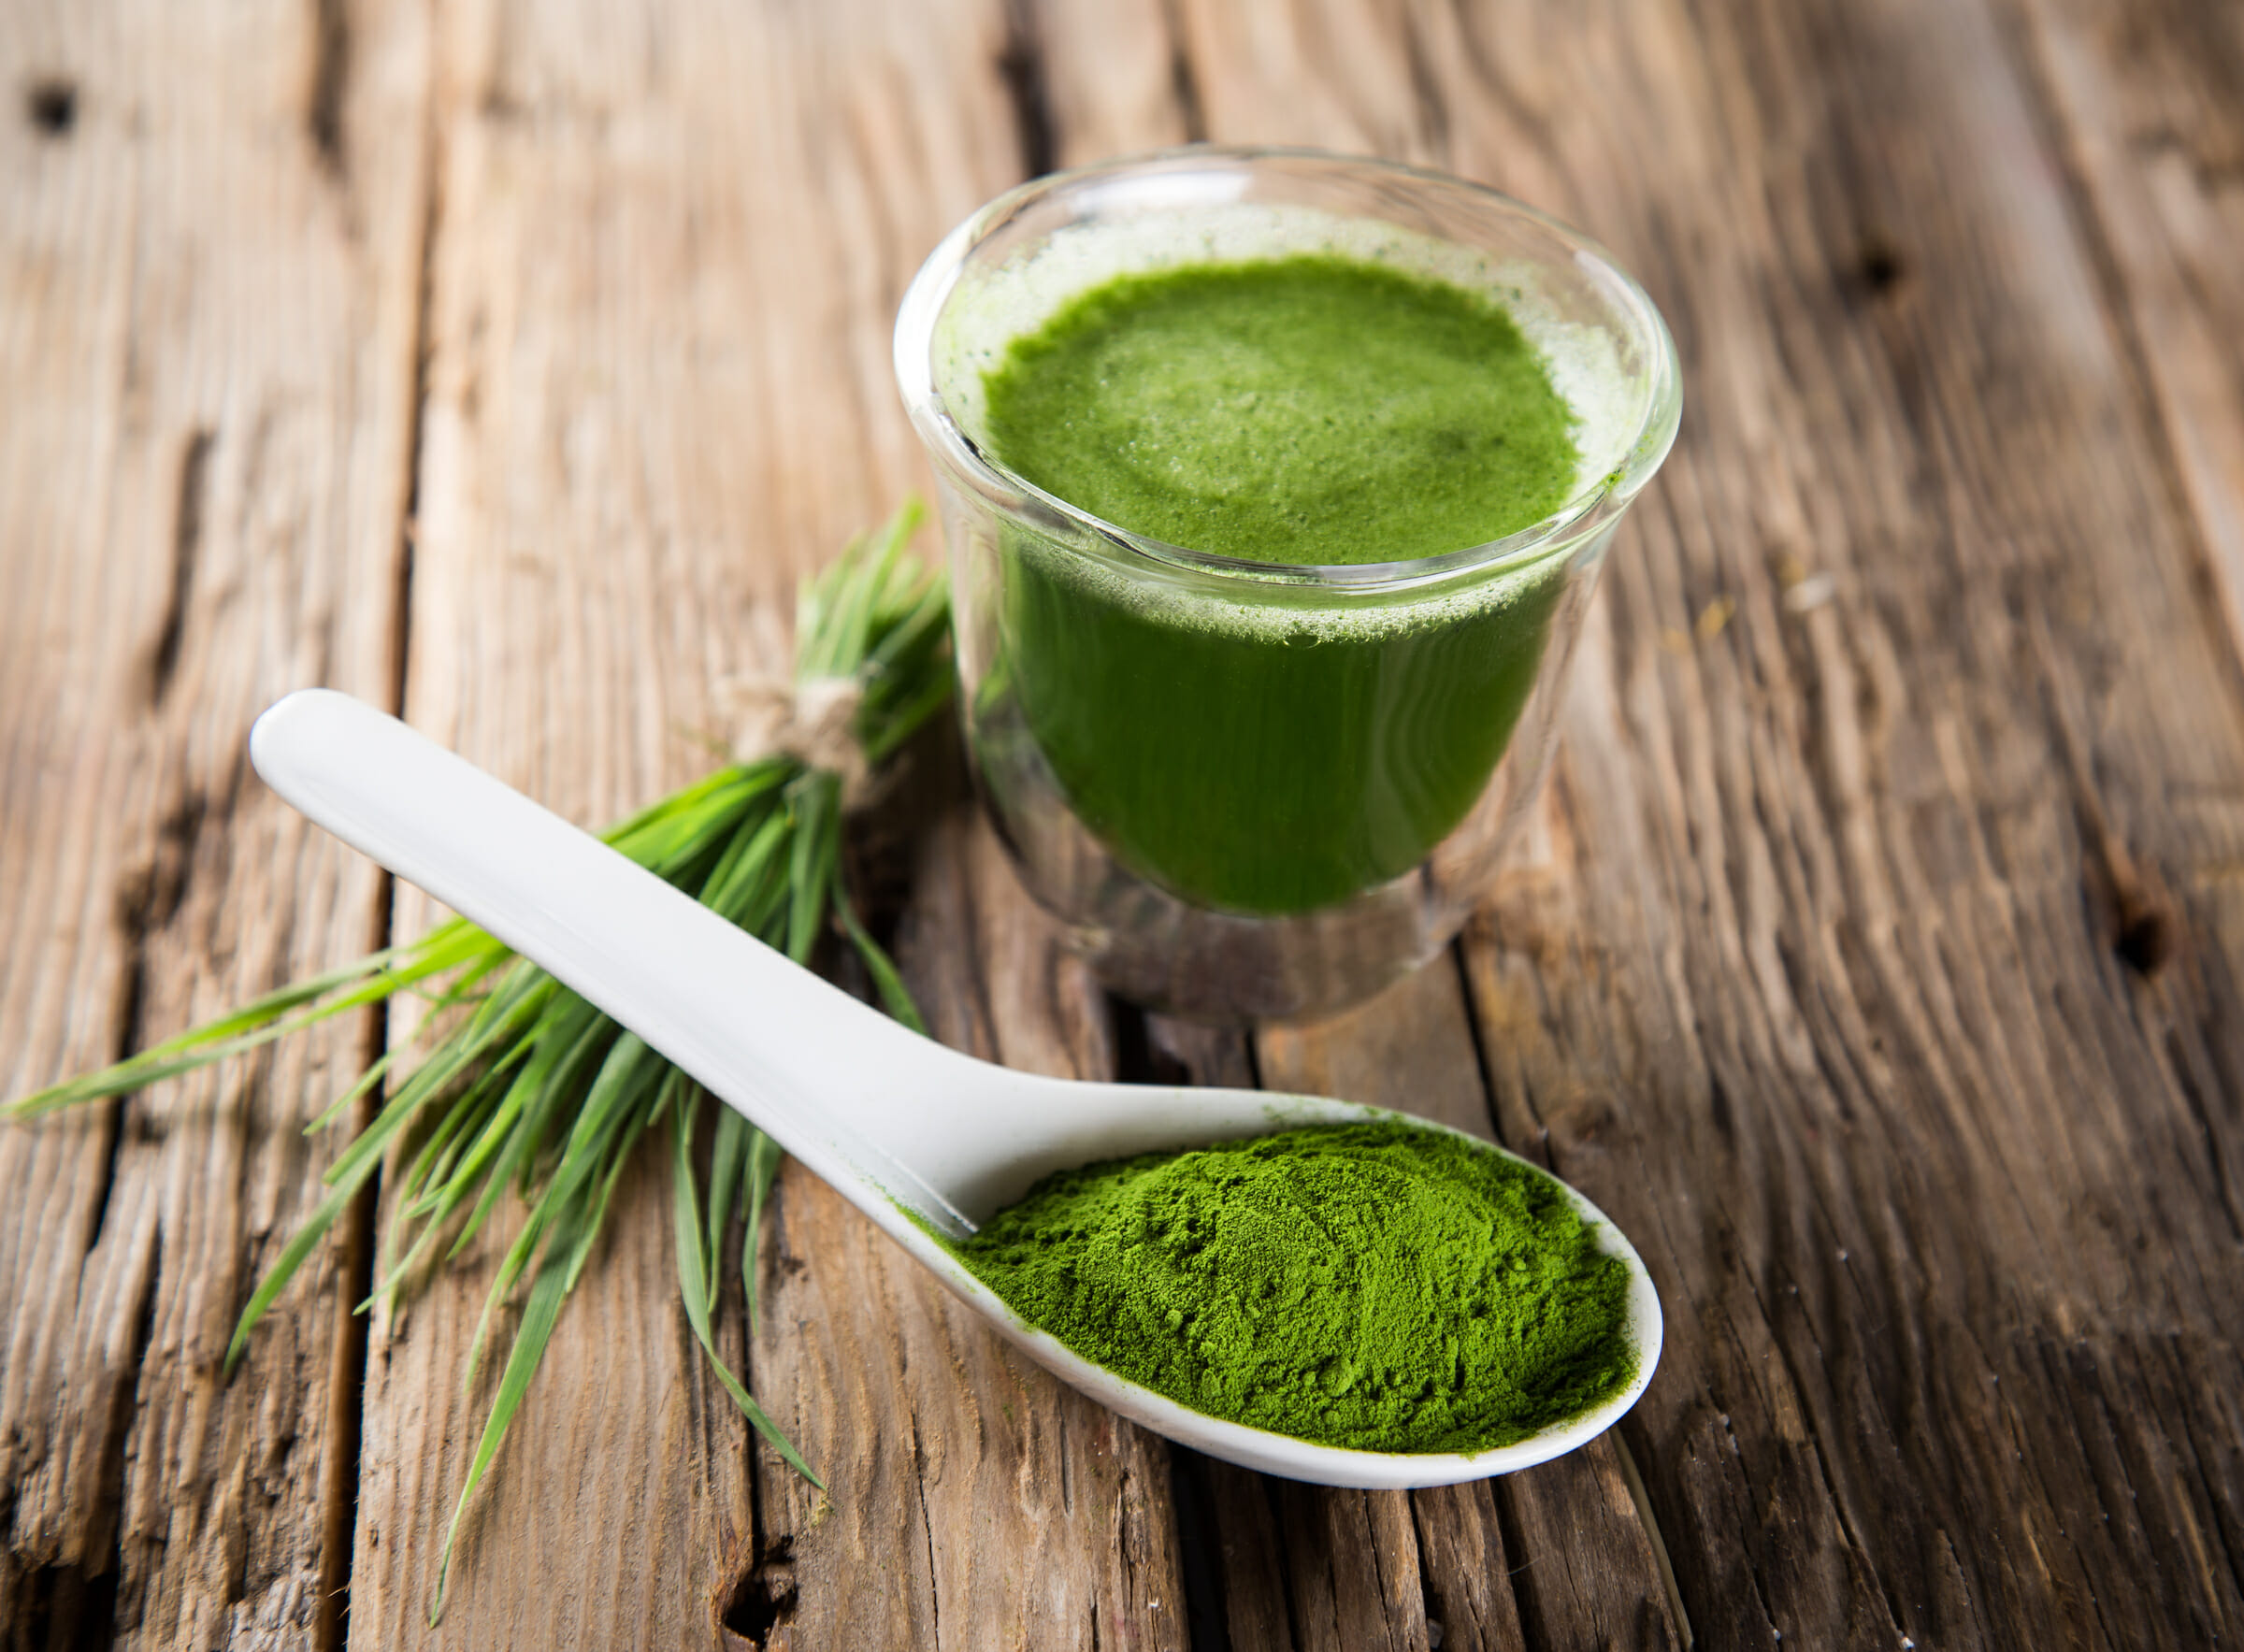 Green Superfood Powders - Do You Really Need Them?